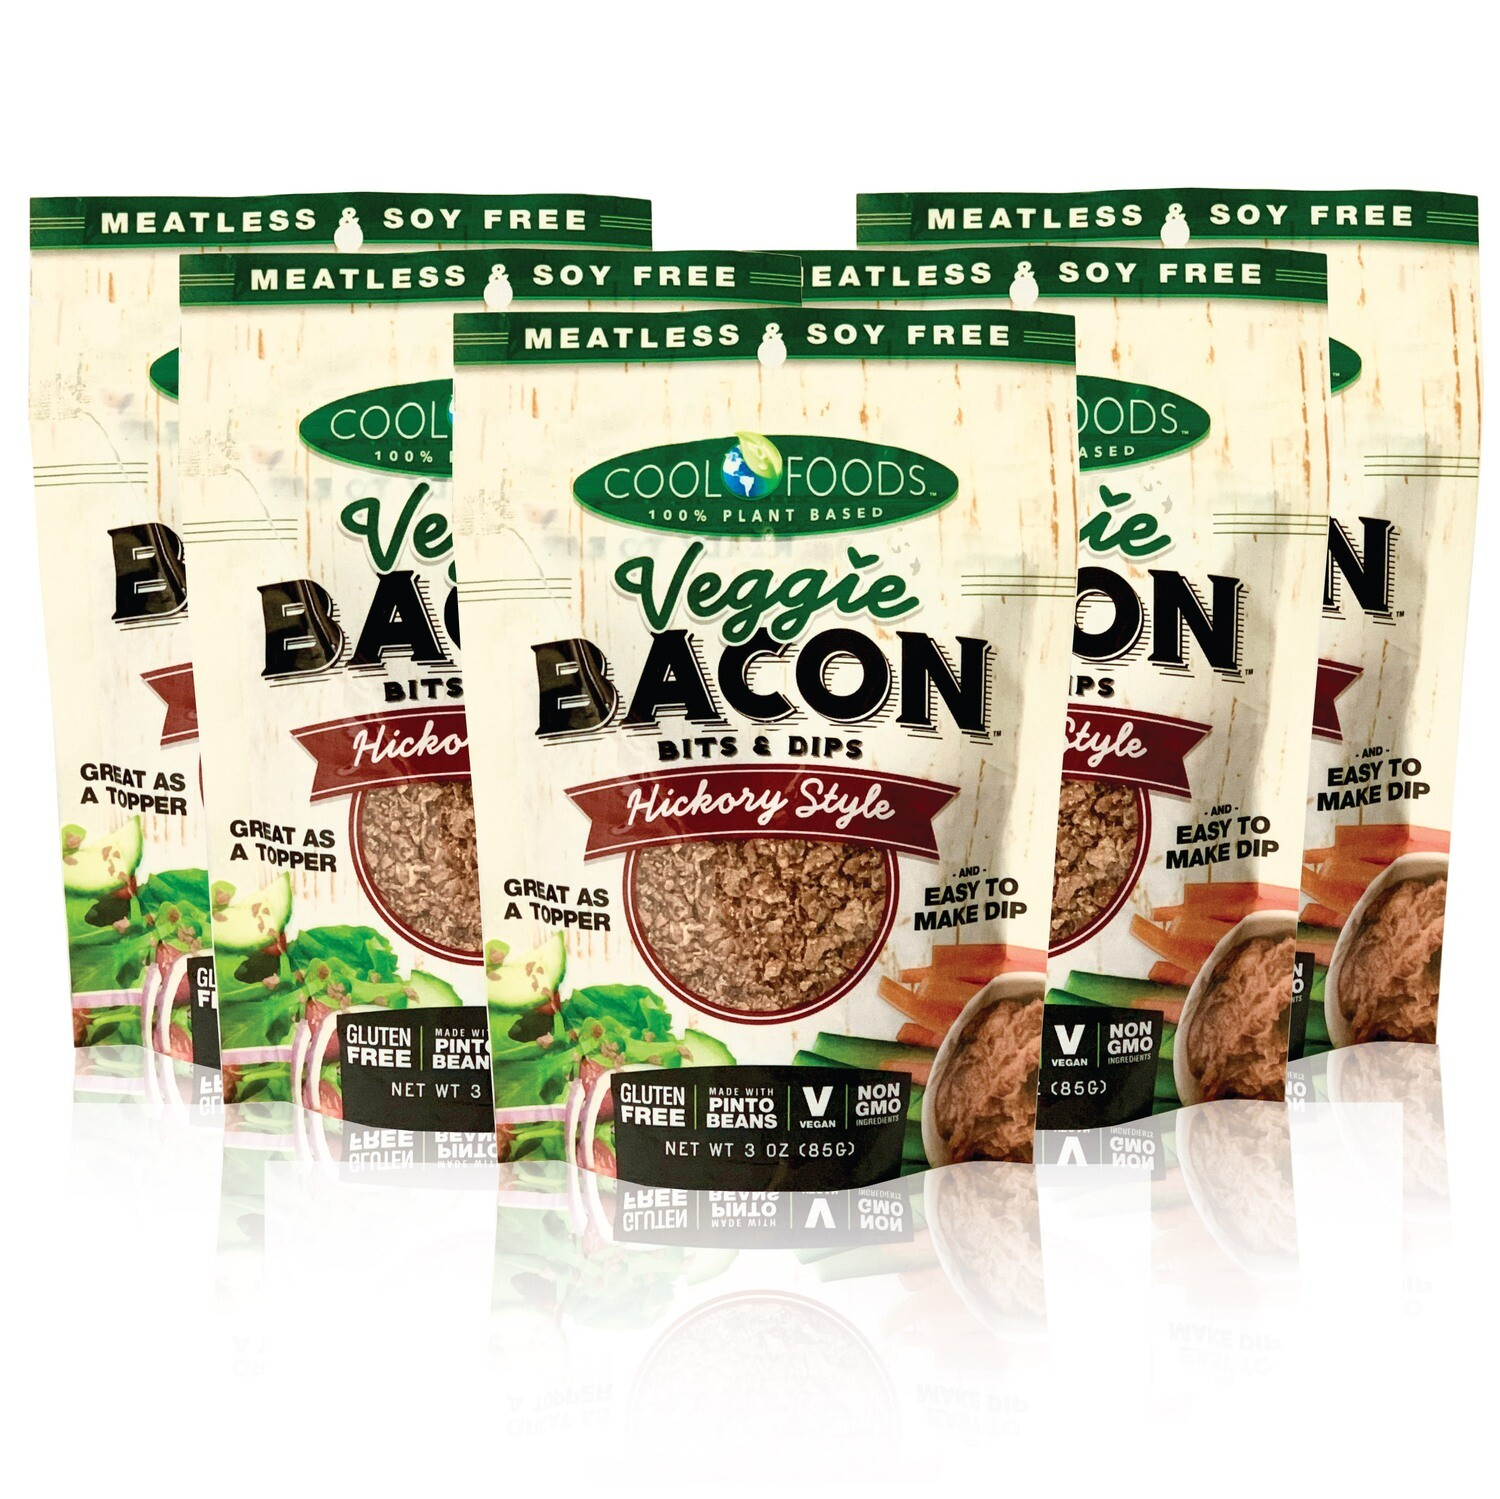 Veggie Bacon Bits & Dips - Hickory Style - 5 Pack